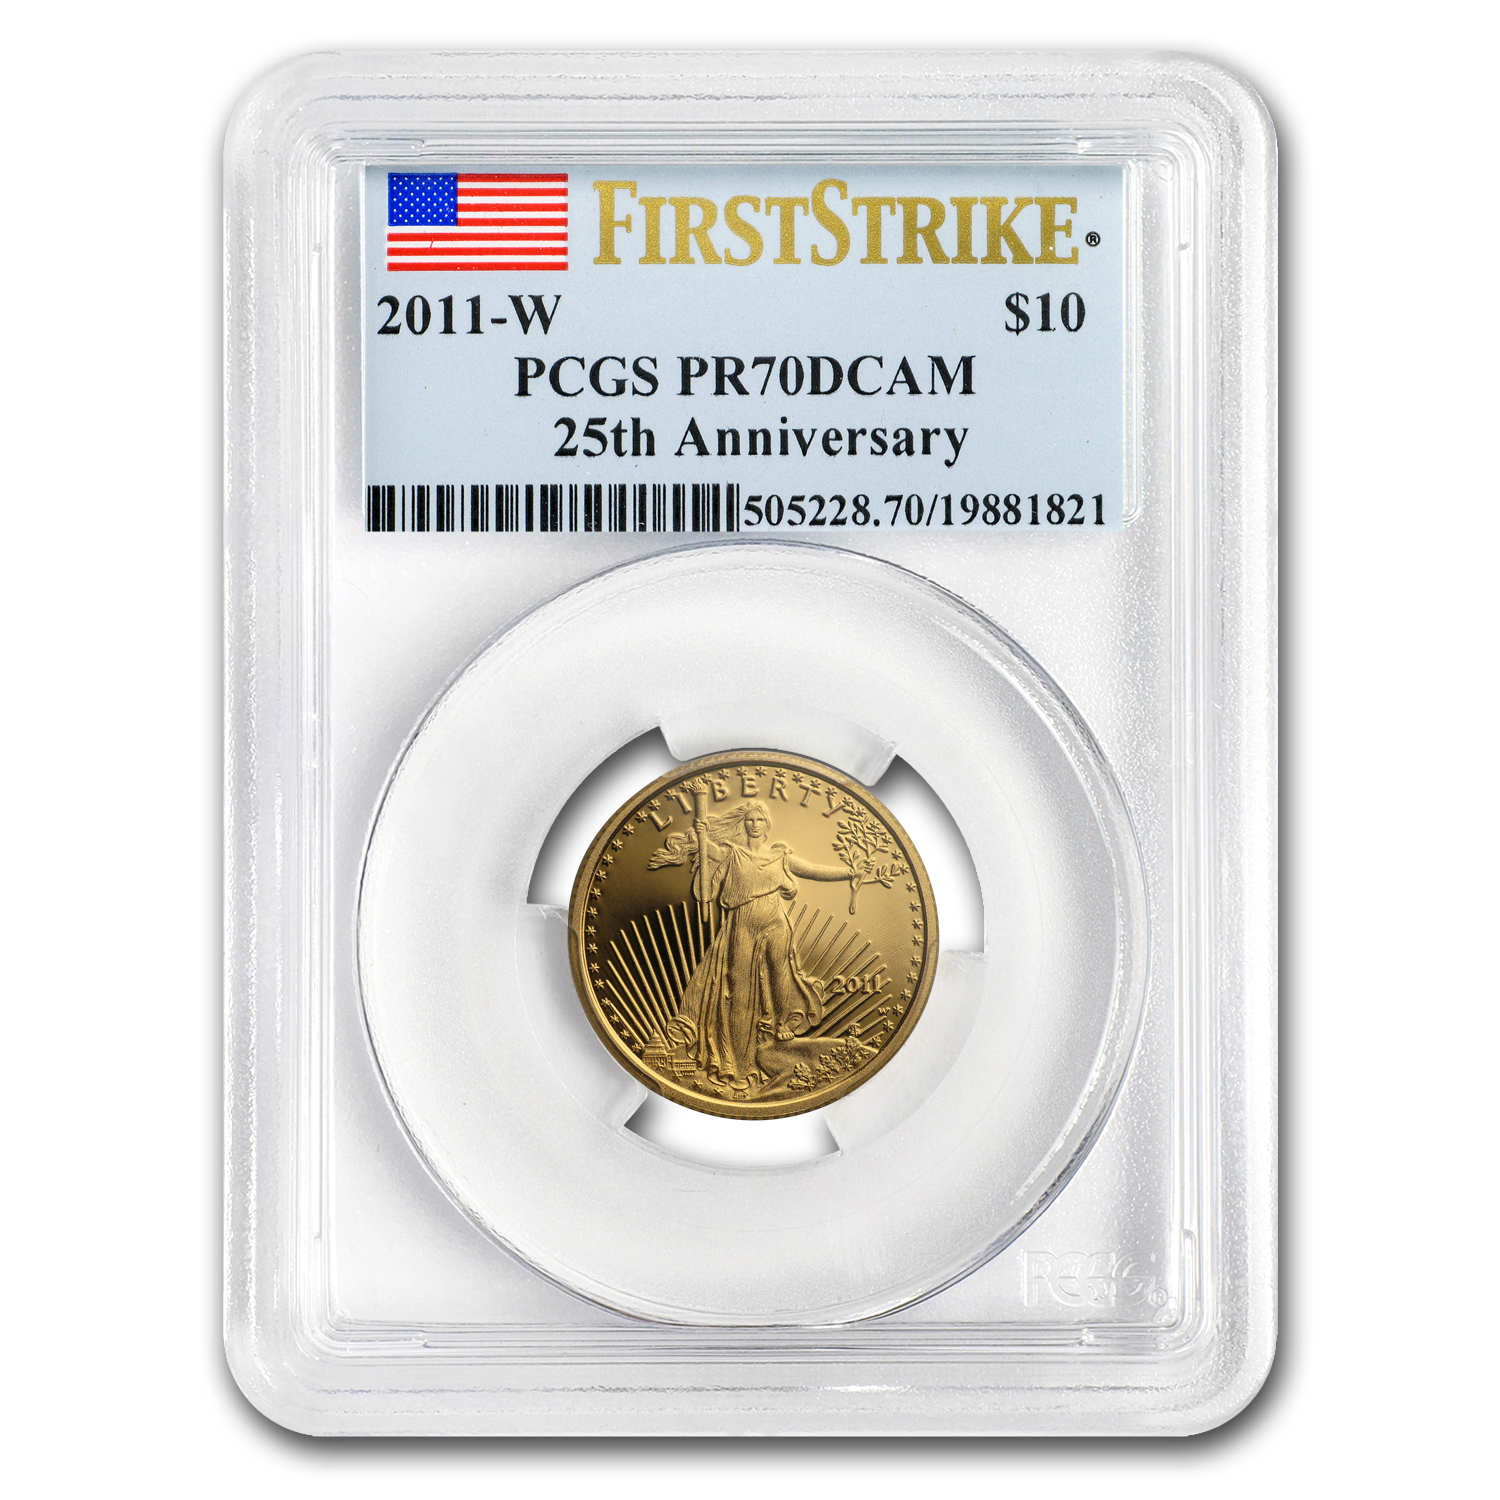 2011-W 1/4 oz Proof Gold American Eagle PR-70 PCGS (First Strike)